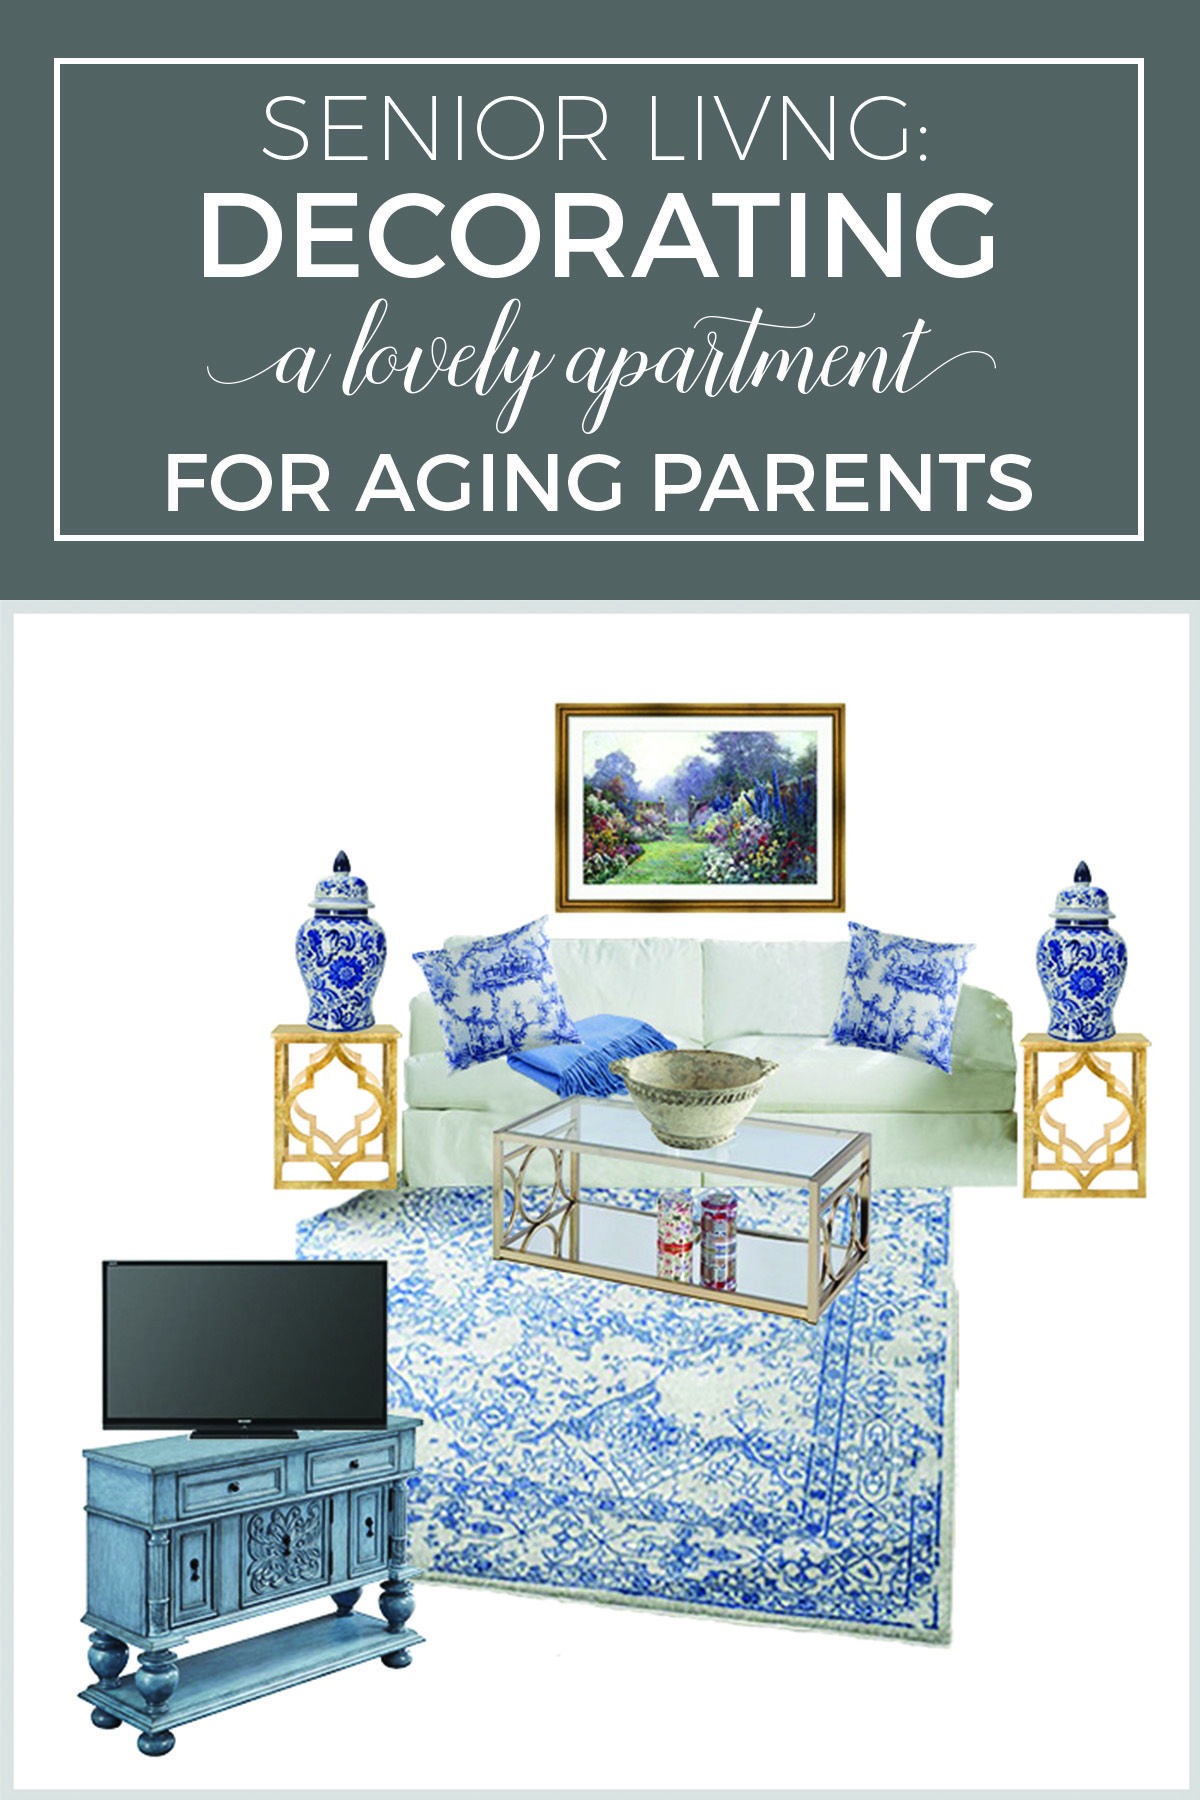 Senior Living: Decorating A Lovely Apartment For Aging